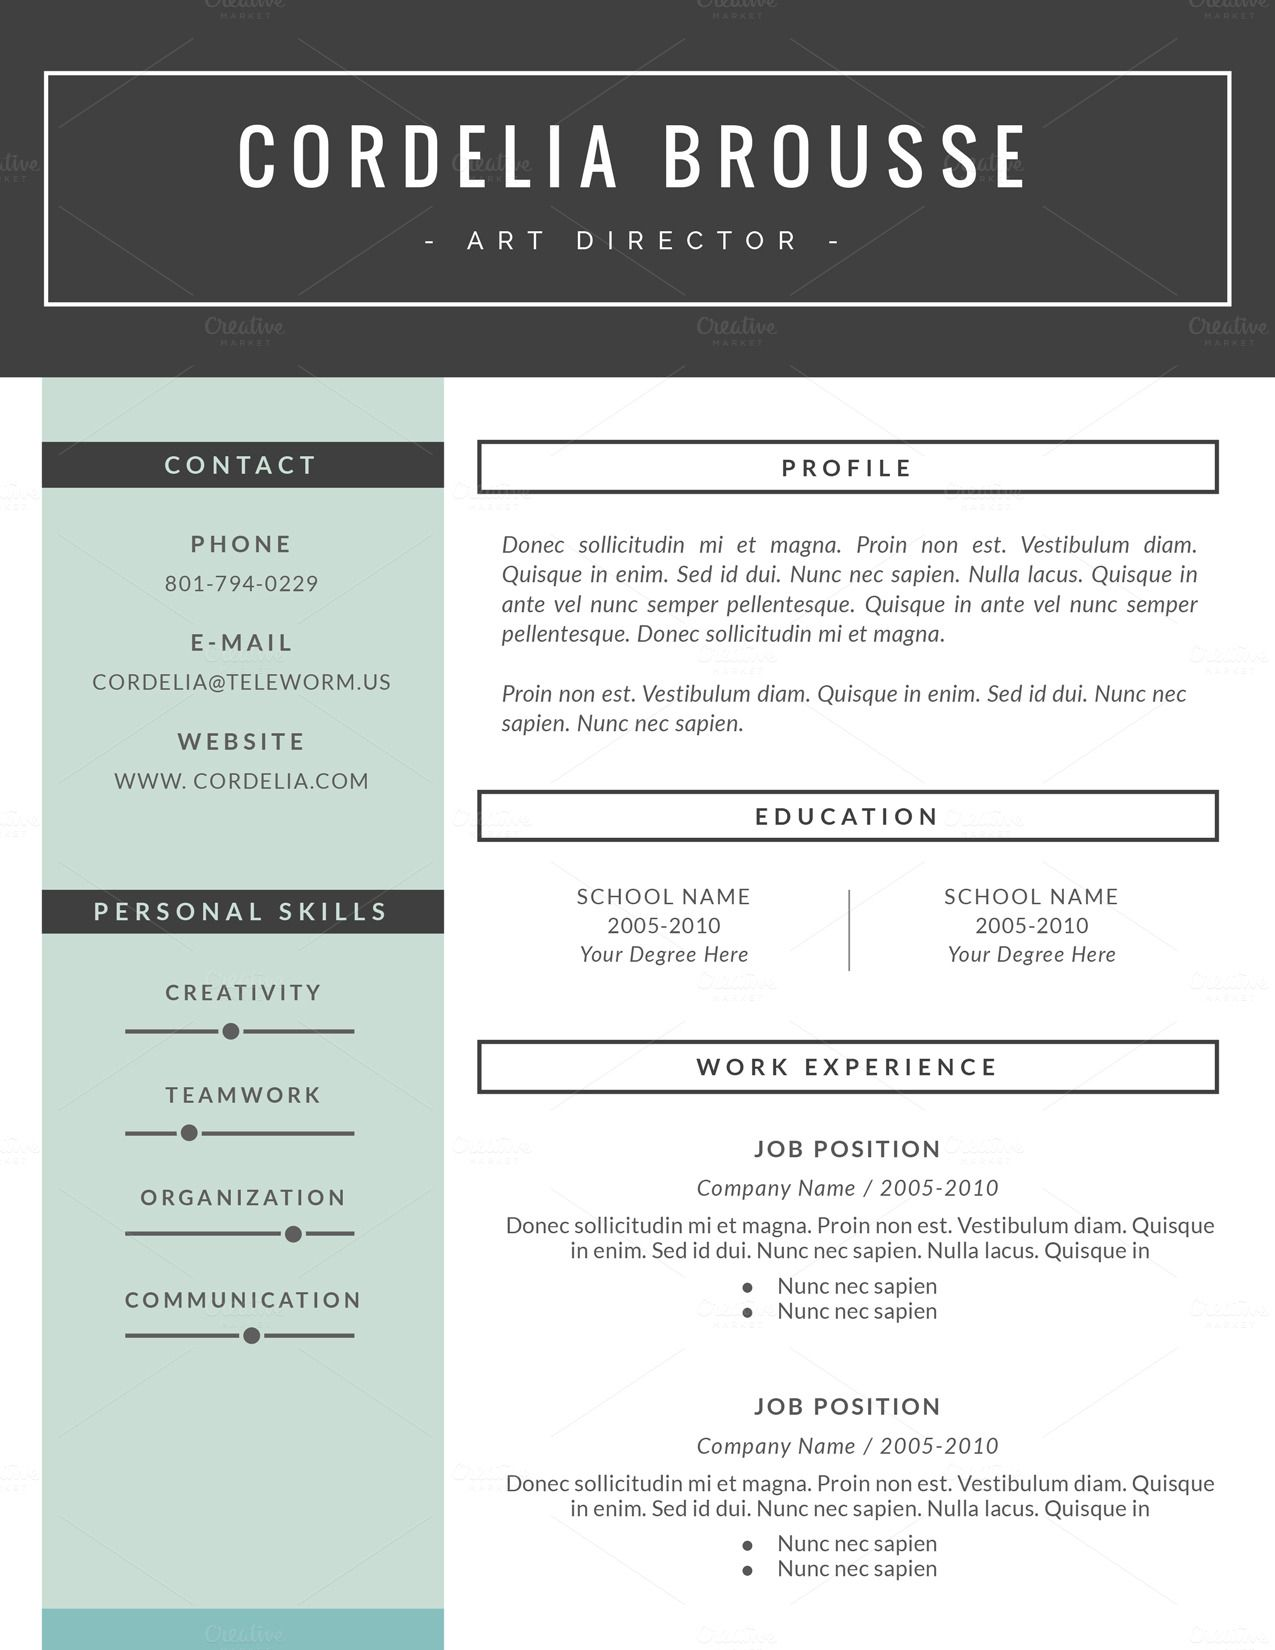 resume template 3 pages  cv template by this paper fox on creative market